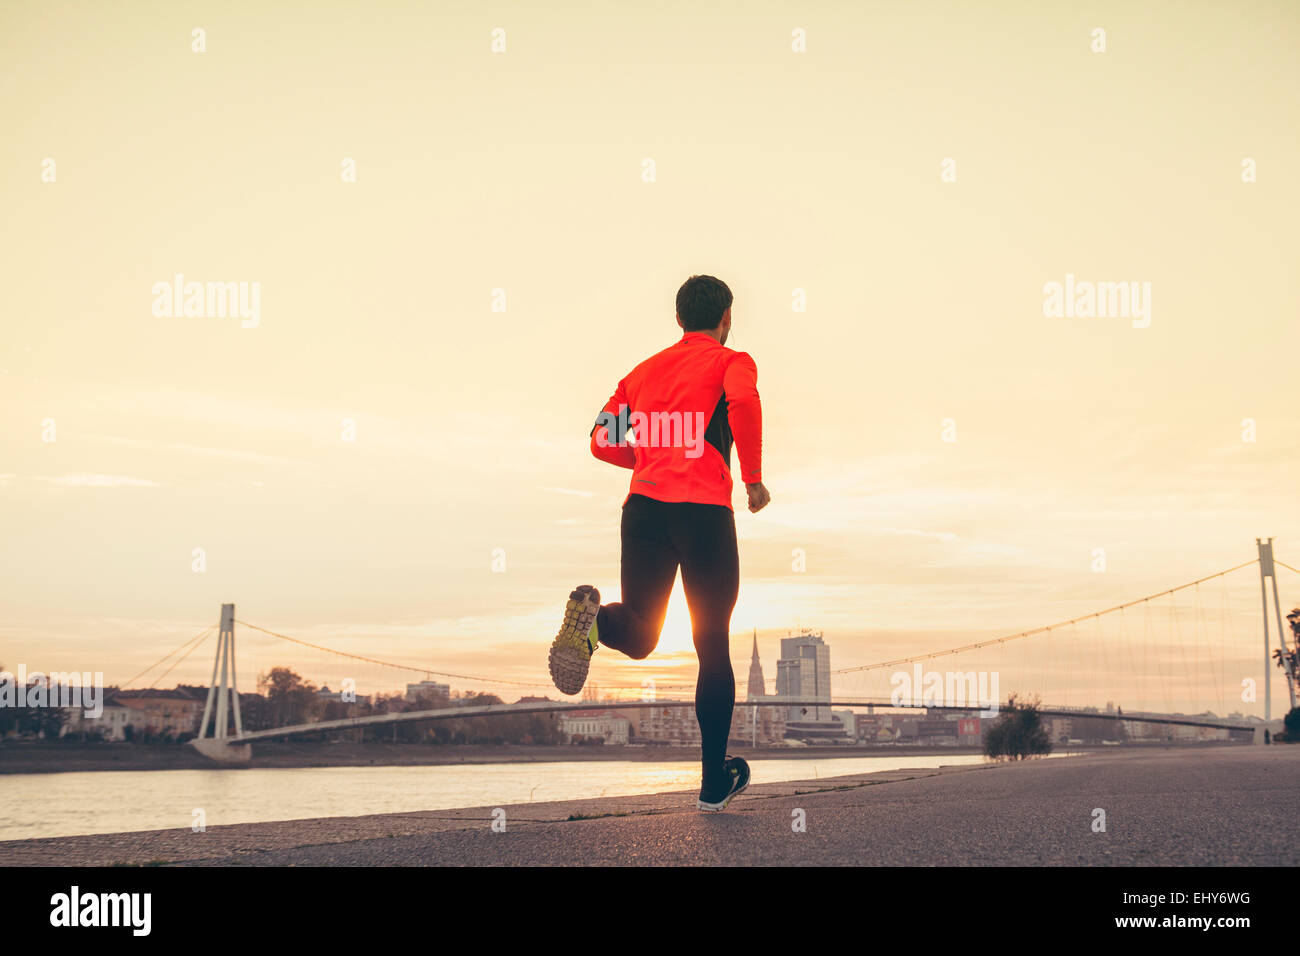 Man jogging on the waterfront against city skyline - Stock Image